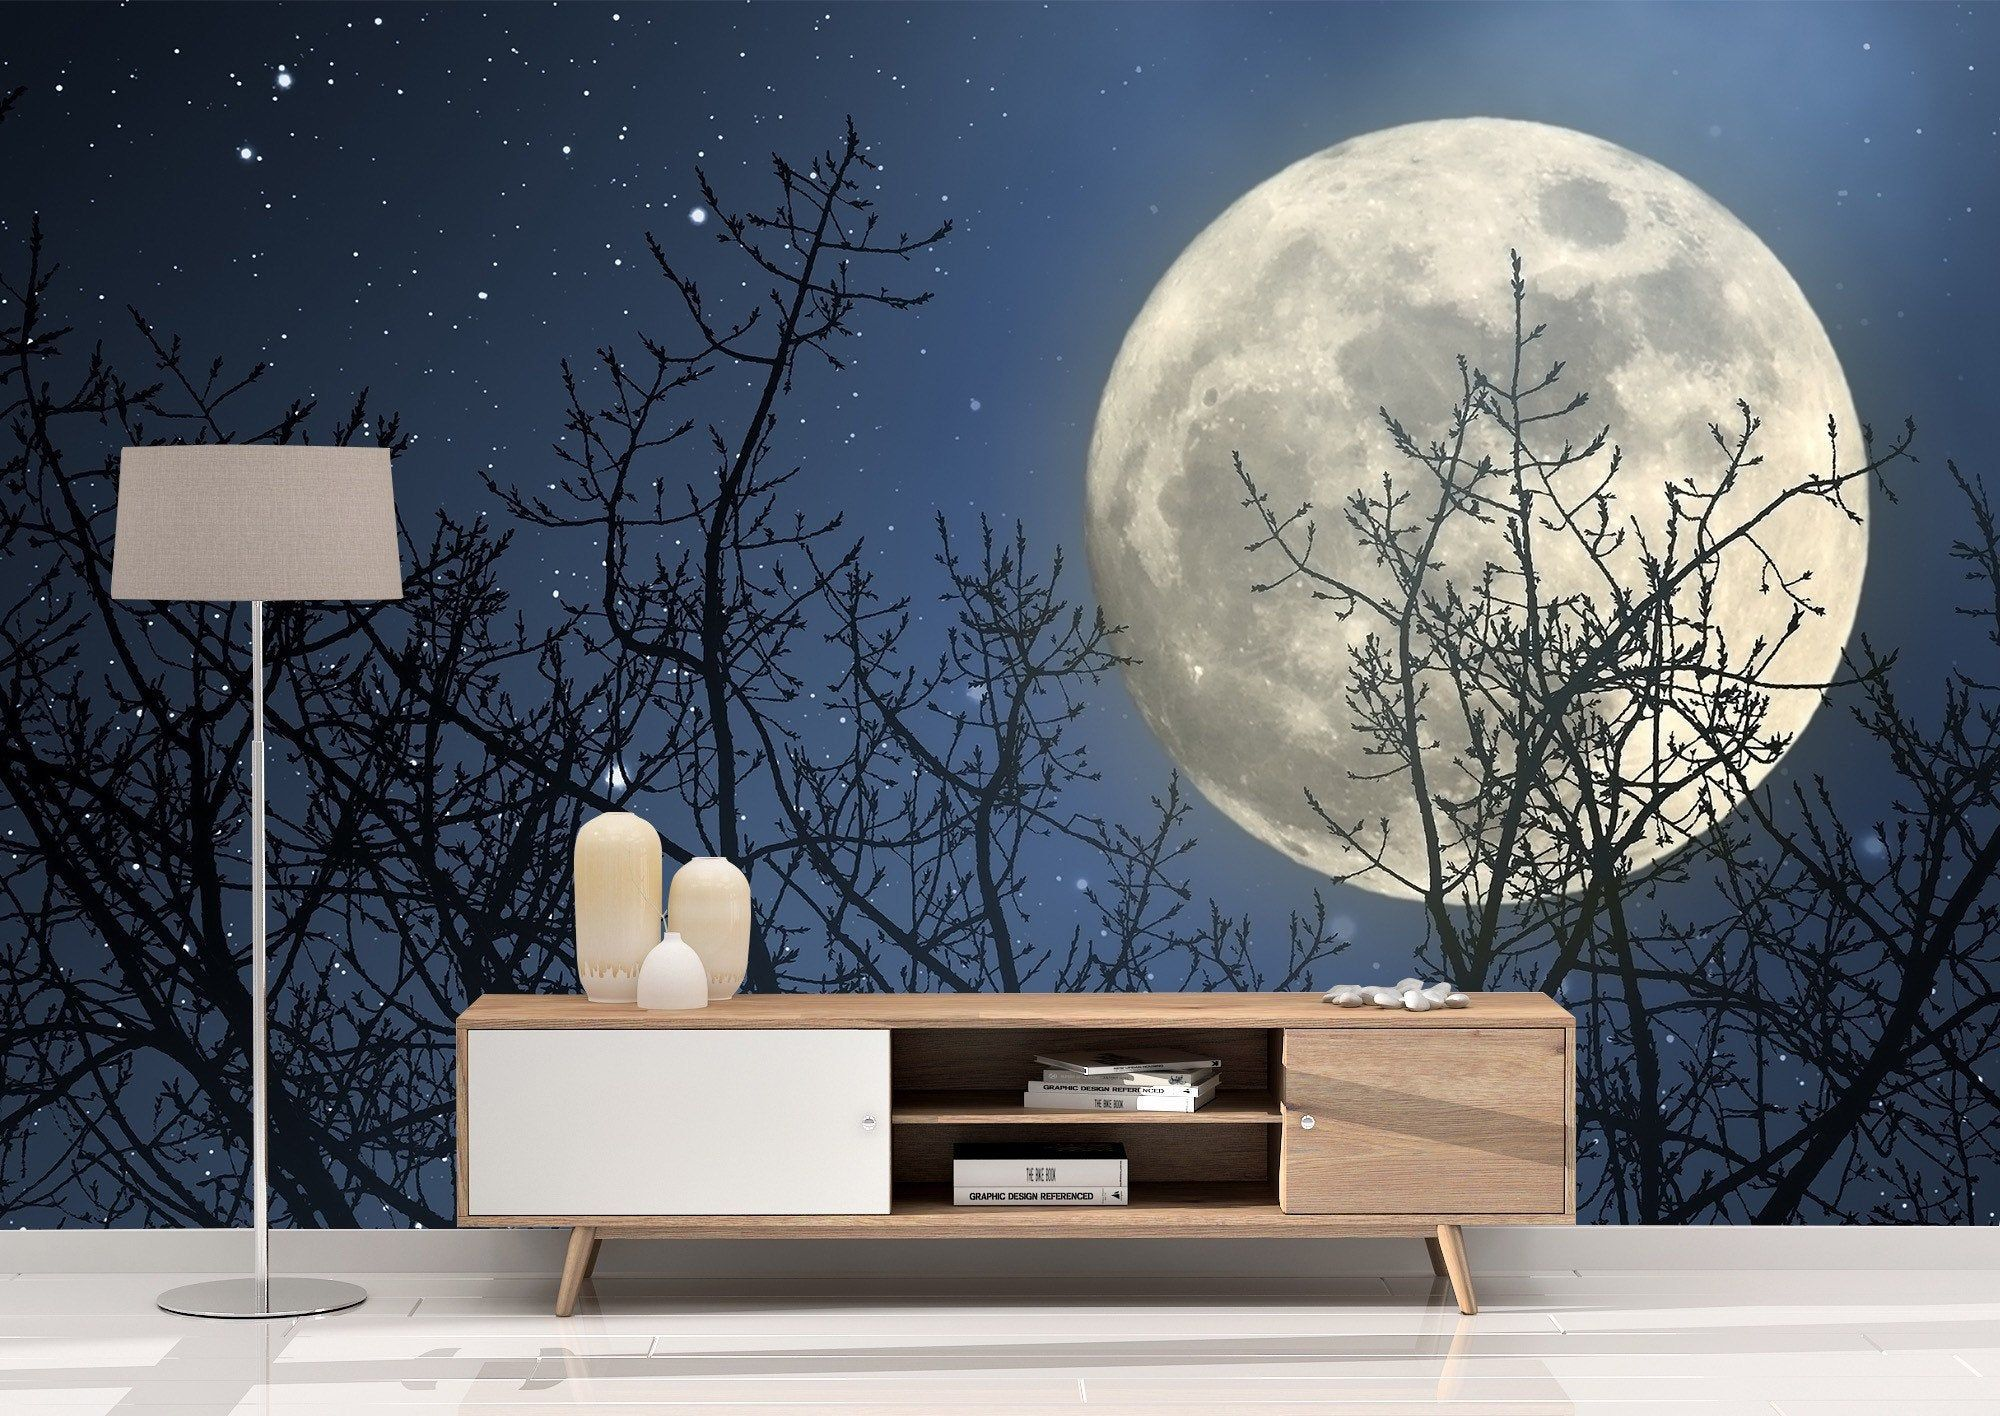 Removable Peel And Stick Wallpaper Full Moon Wall Mural Etsy Mural Wallpaper Peel And Stick Wallpaper Mural